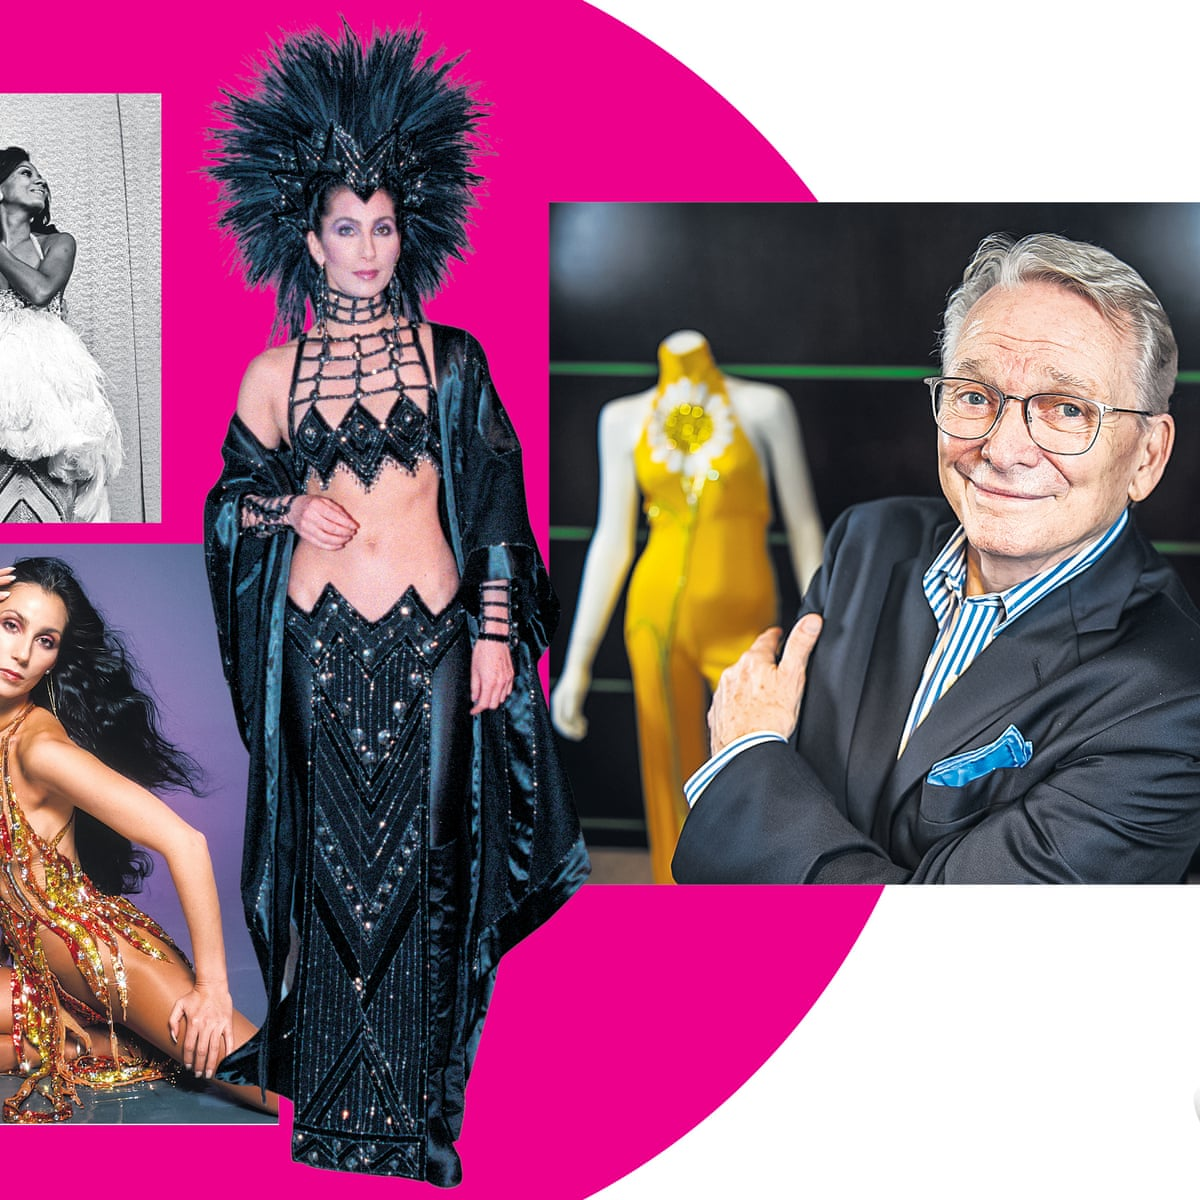 Gay Icons Like To Dress Up Bob Mackie On Cher Tina Turner And Dressing Elton John As Donald Duck Fashion The Guardian